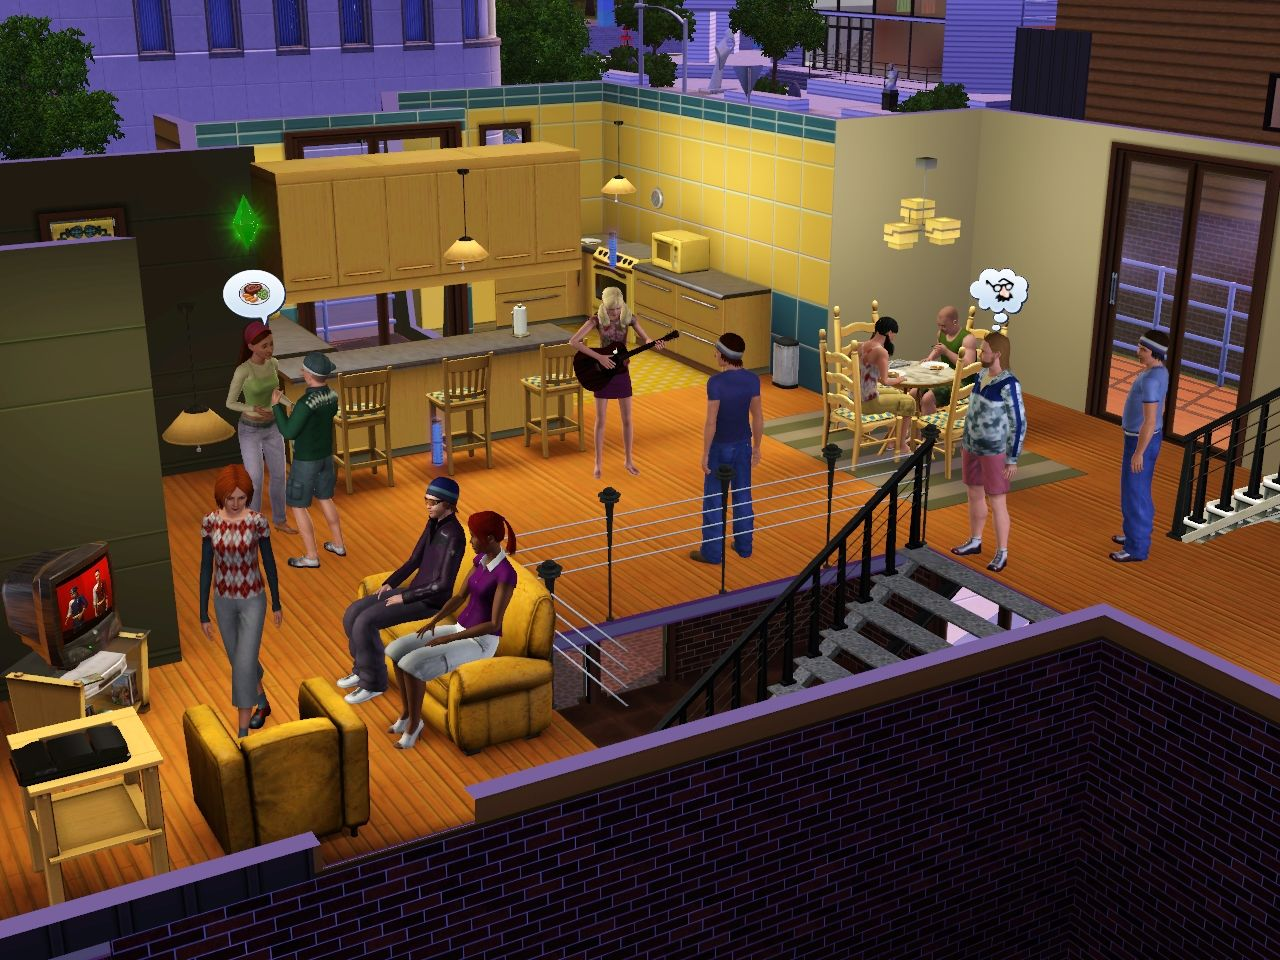 The Sims 3 Windows Havin' a party.